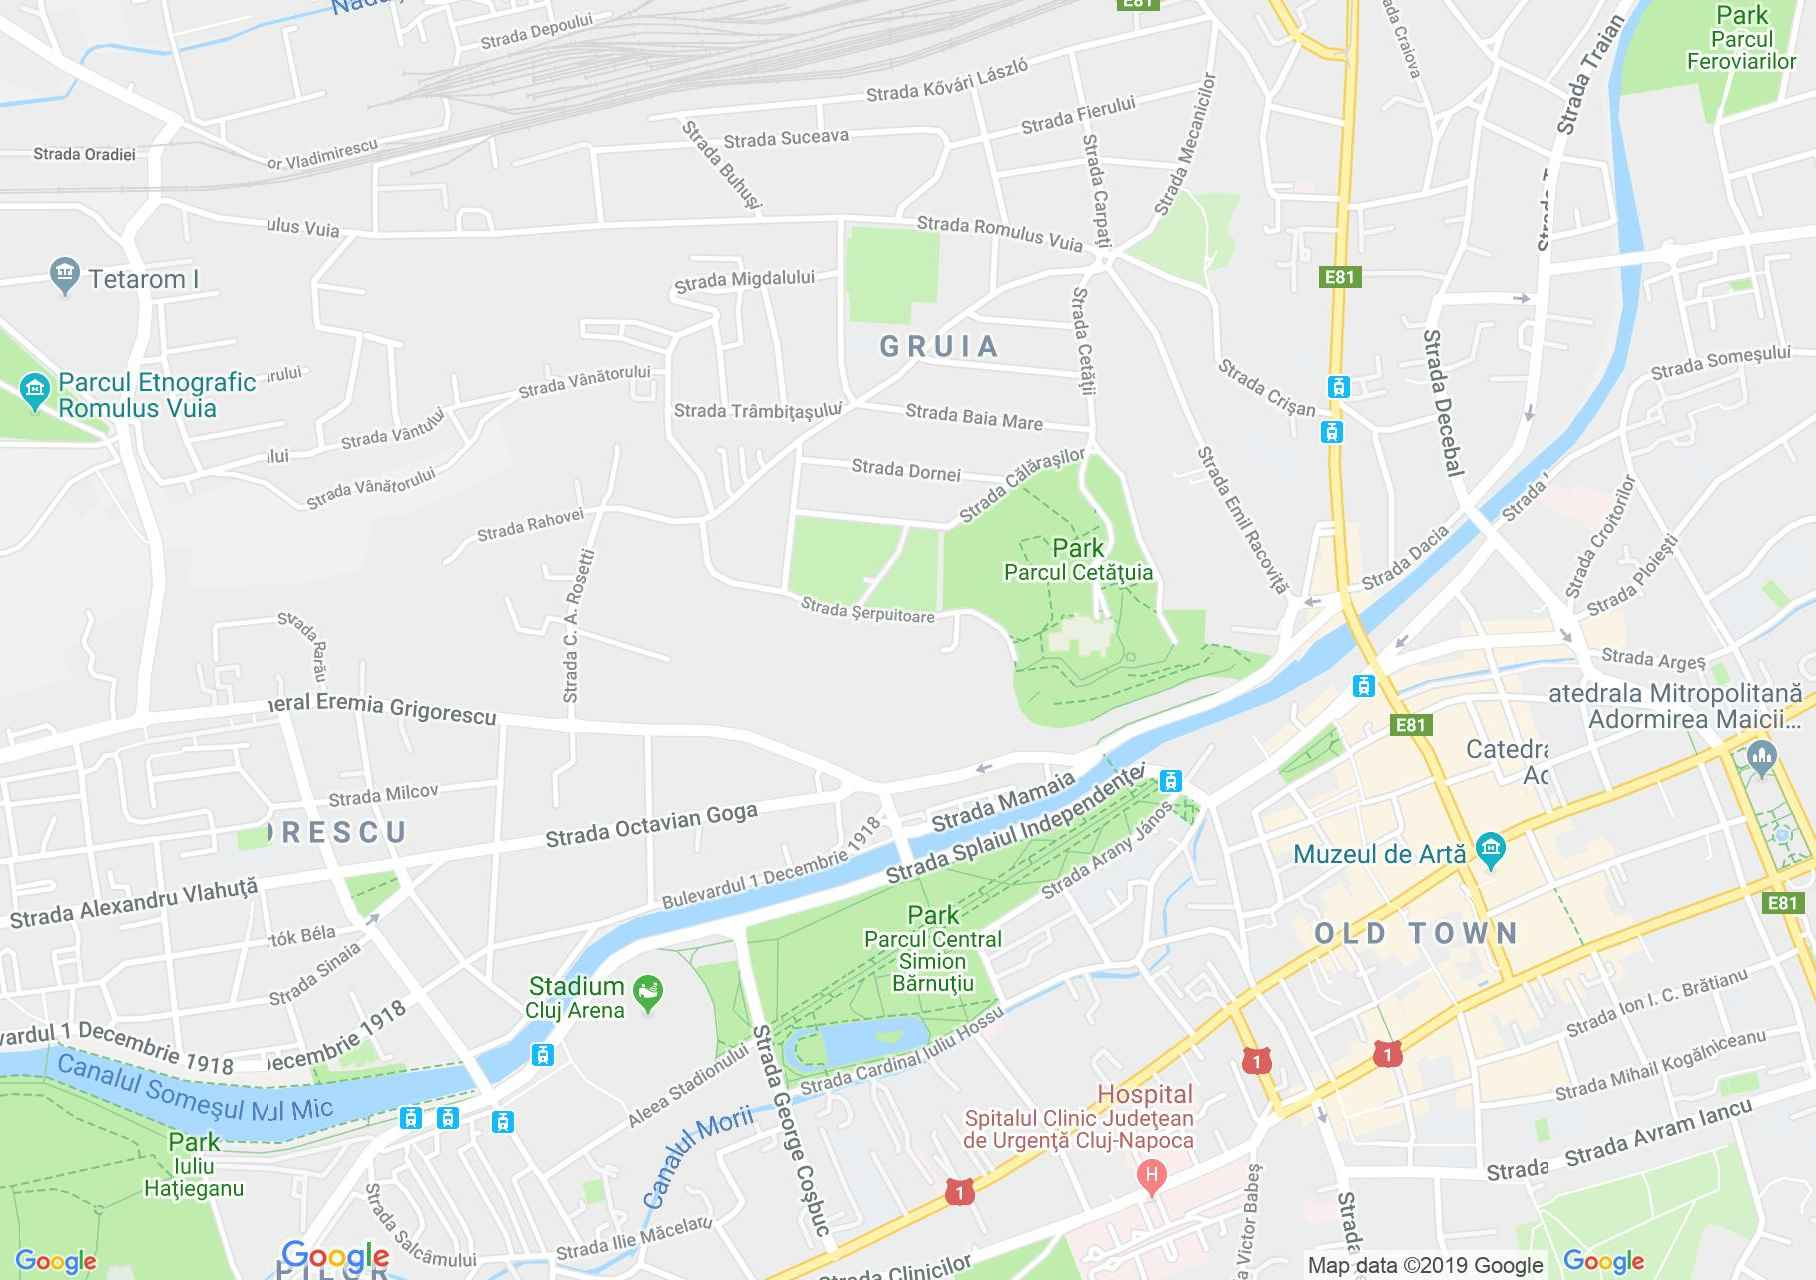 Map of Cluj-Napoca: Central Park